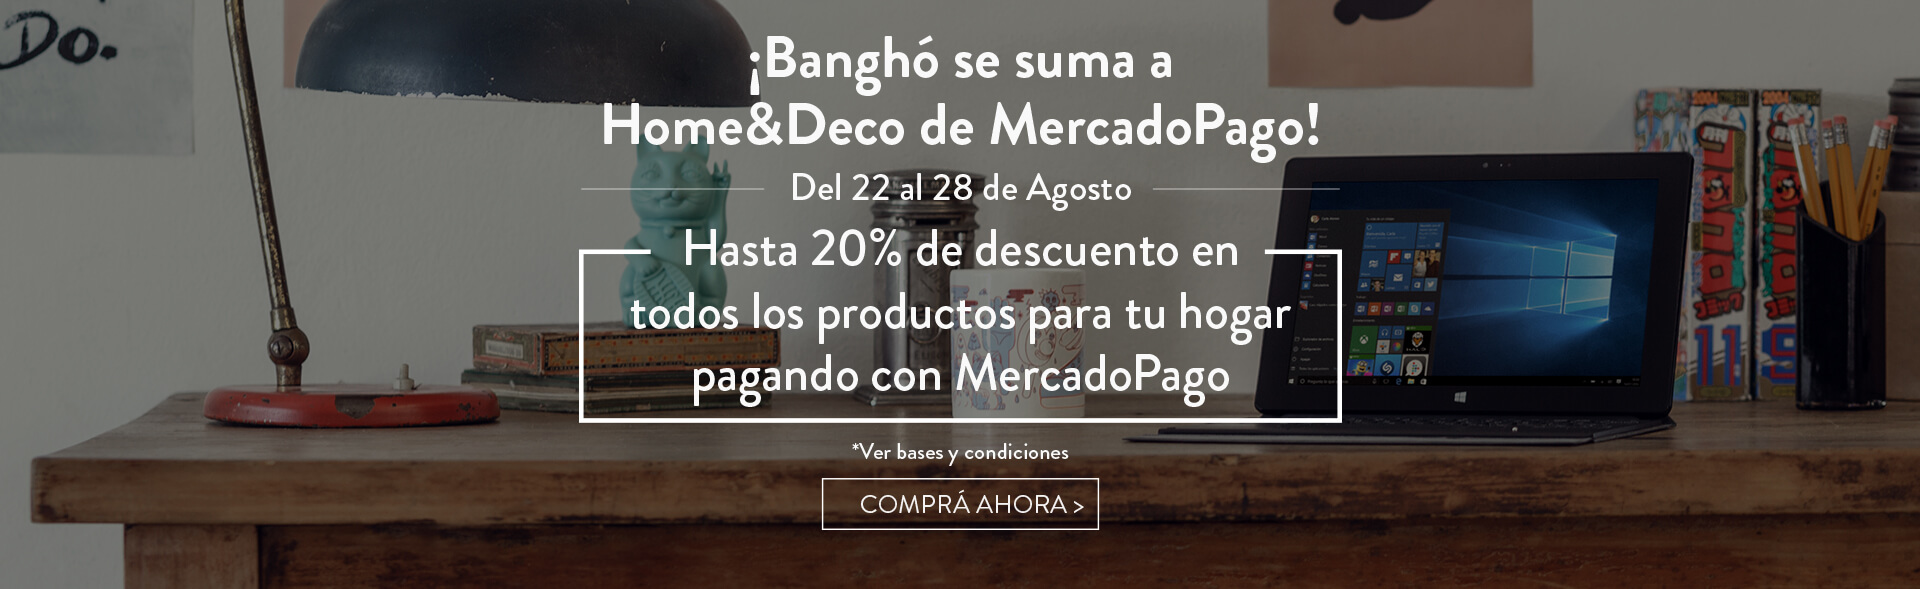 Banner Home&Deco